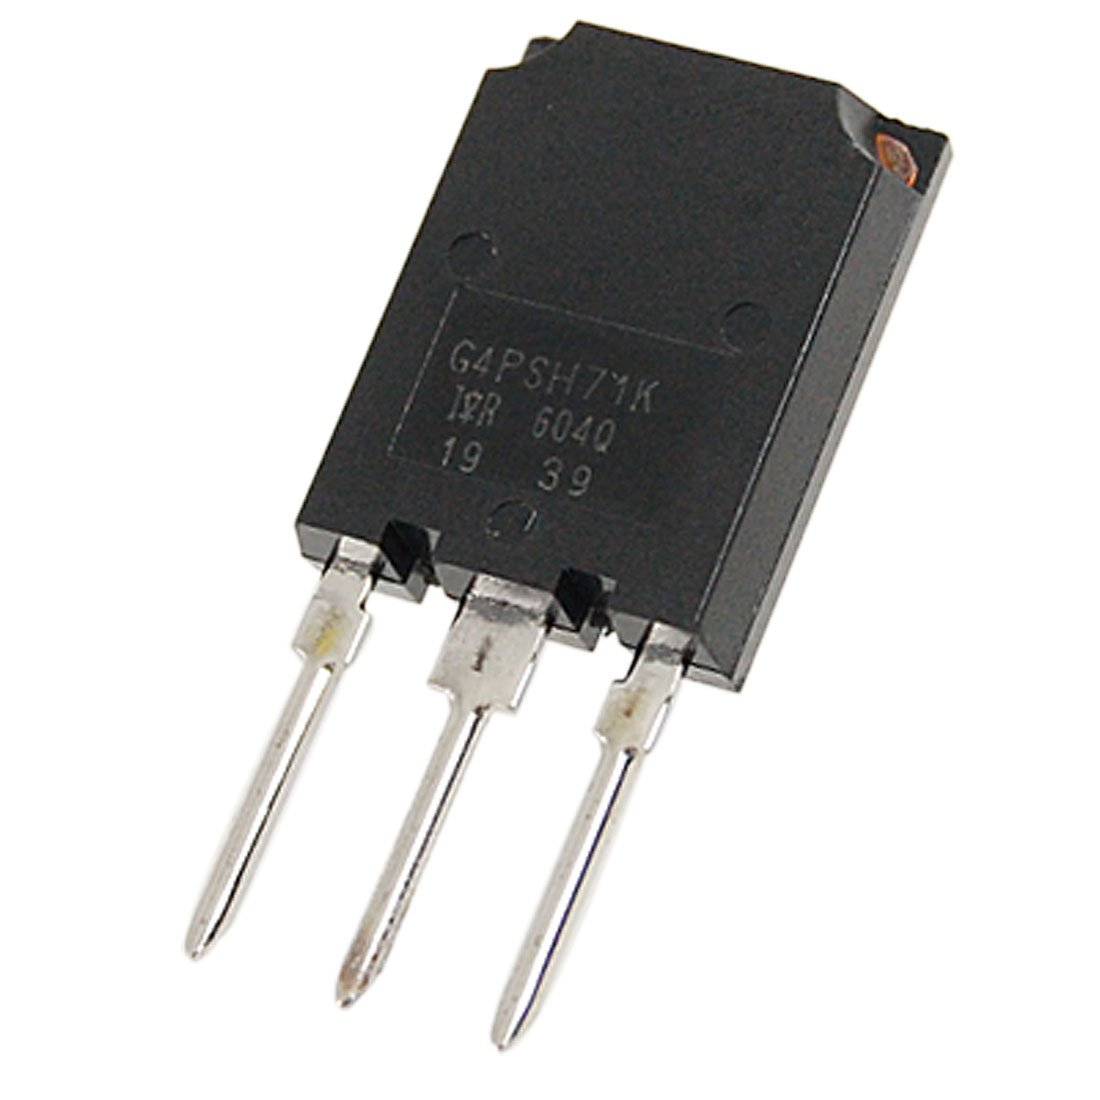 Aexit IRG4PSH71K 40A Interfaces 1200V Insulated Gate Radio Frequency Transceivers Transistor IGBT